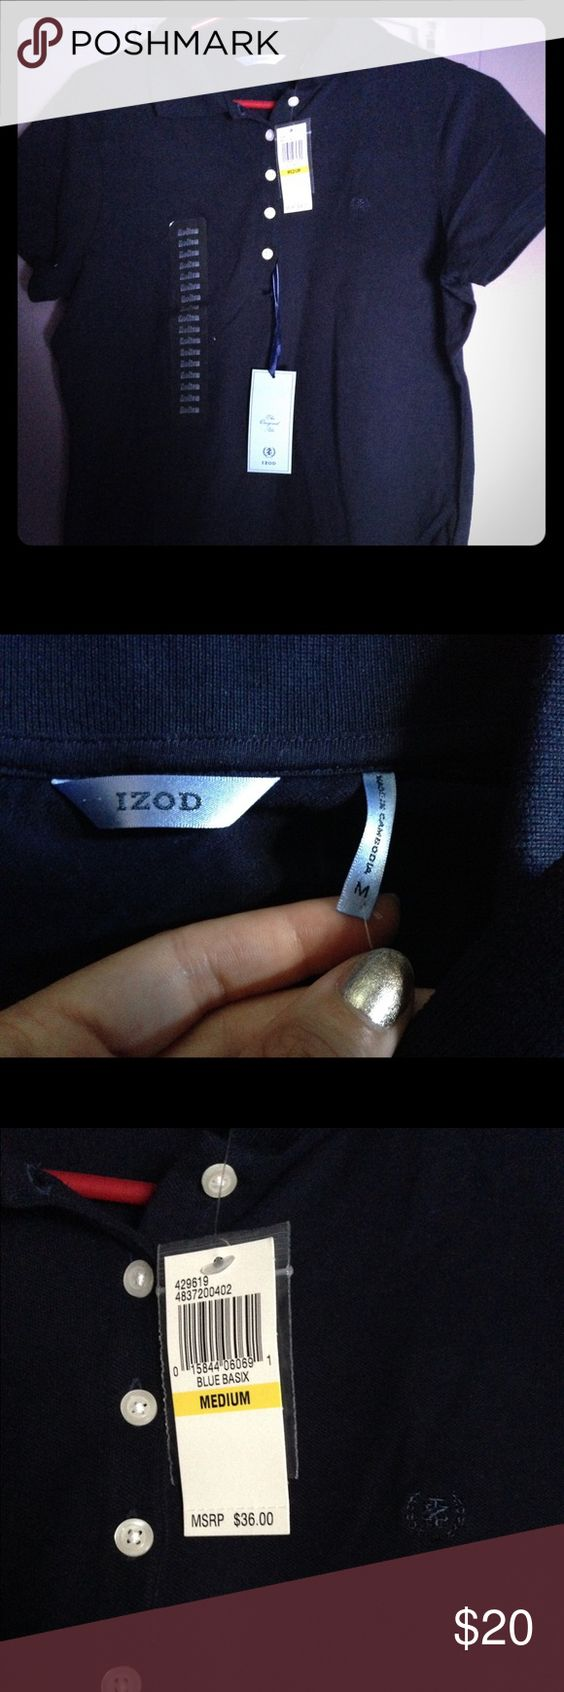 NWT IZOD Navy Blue Shirt It's a size M, navy blue shirt from IZOD. Never worn before, it was big on me. Make an offer! Izod Tops Button Down Shirts